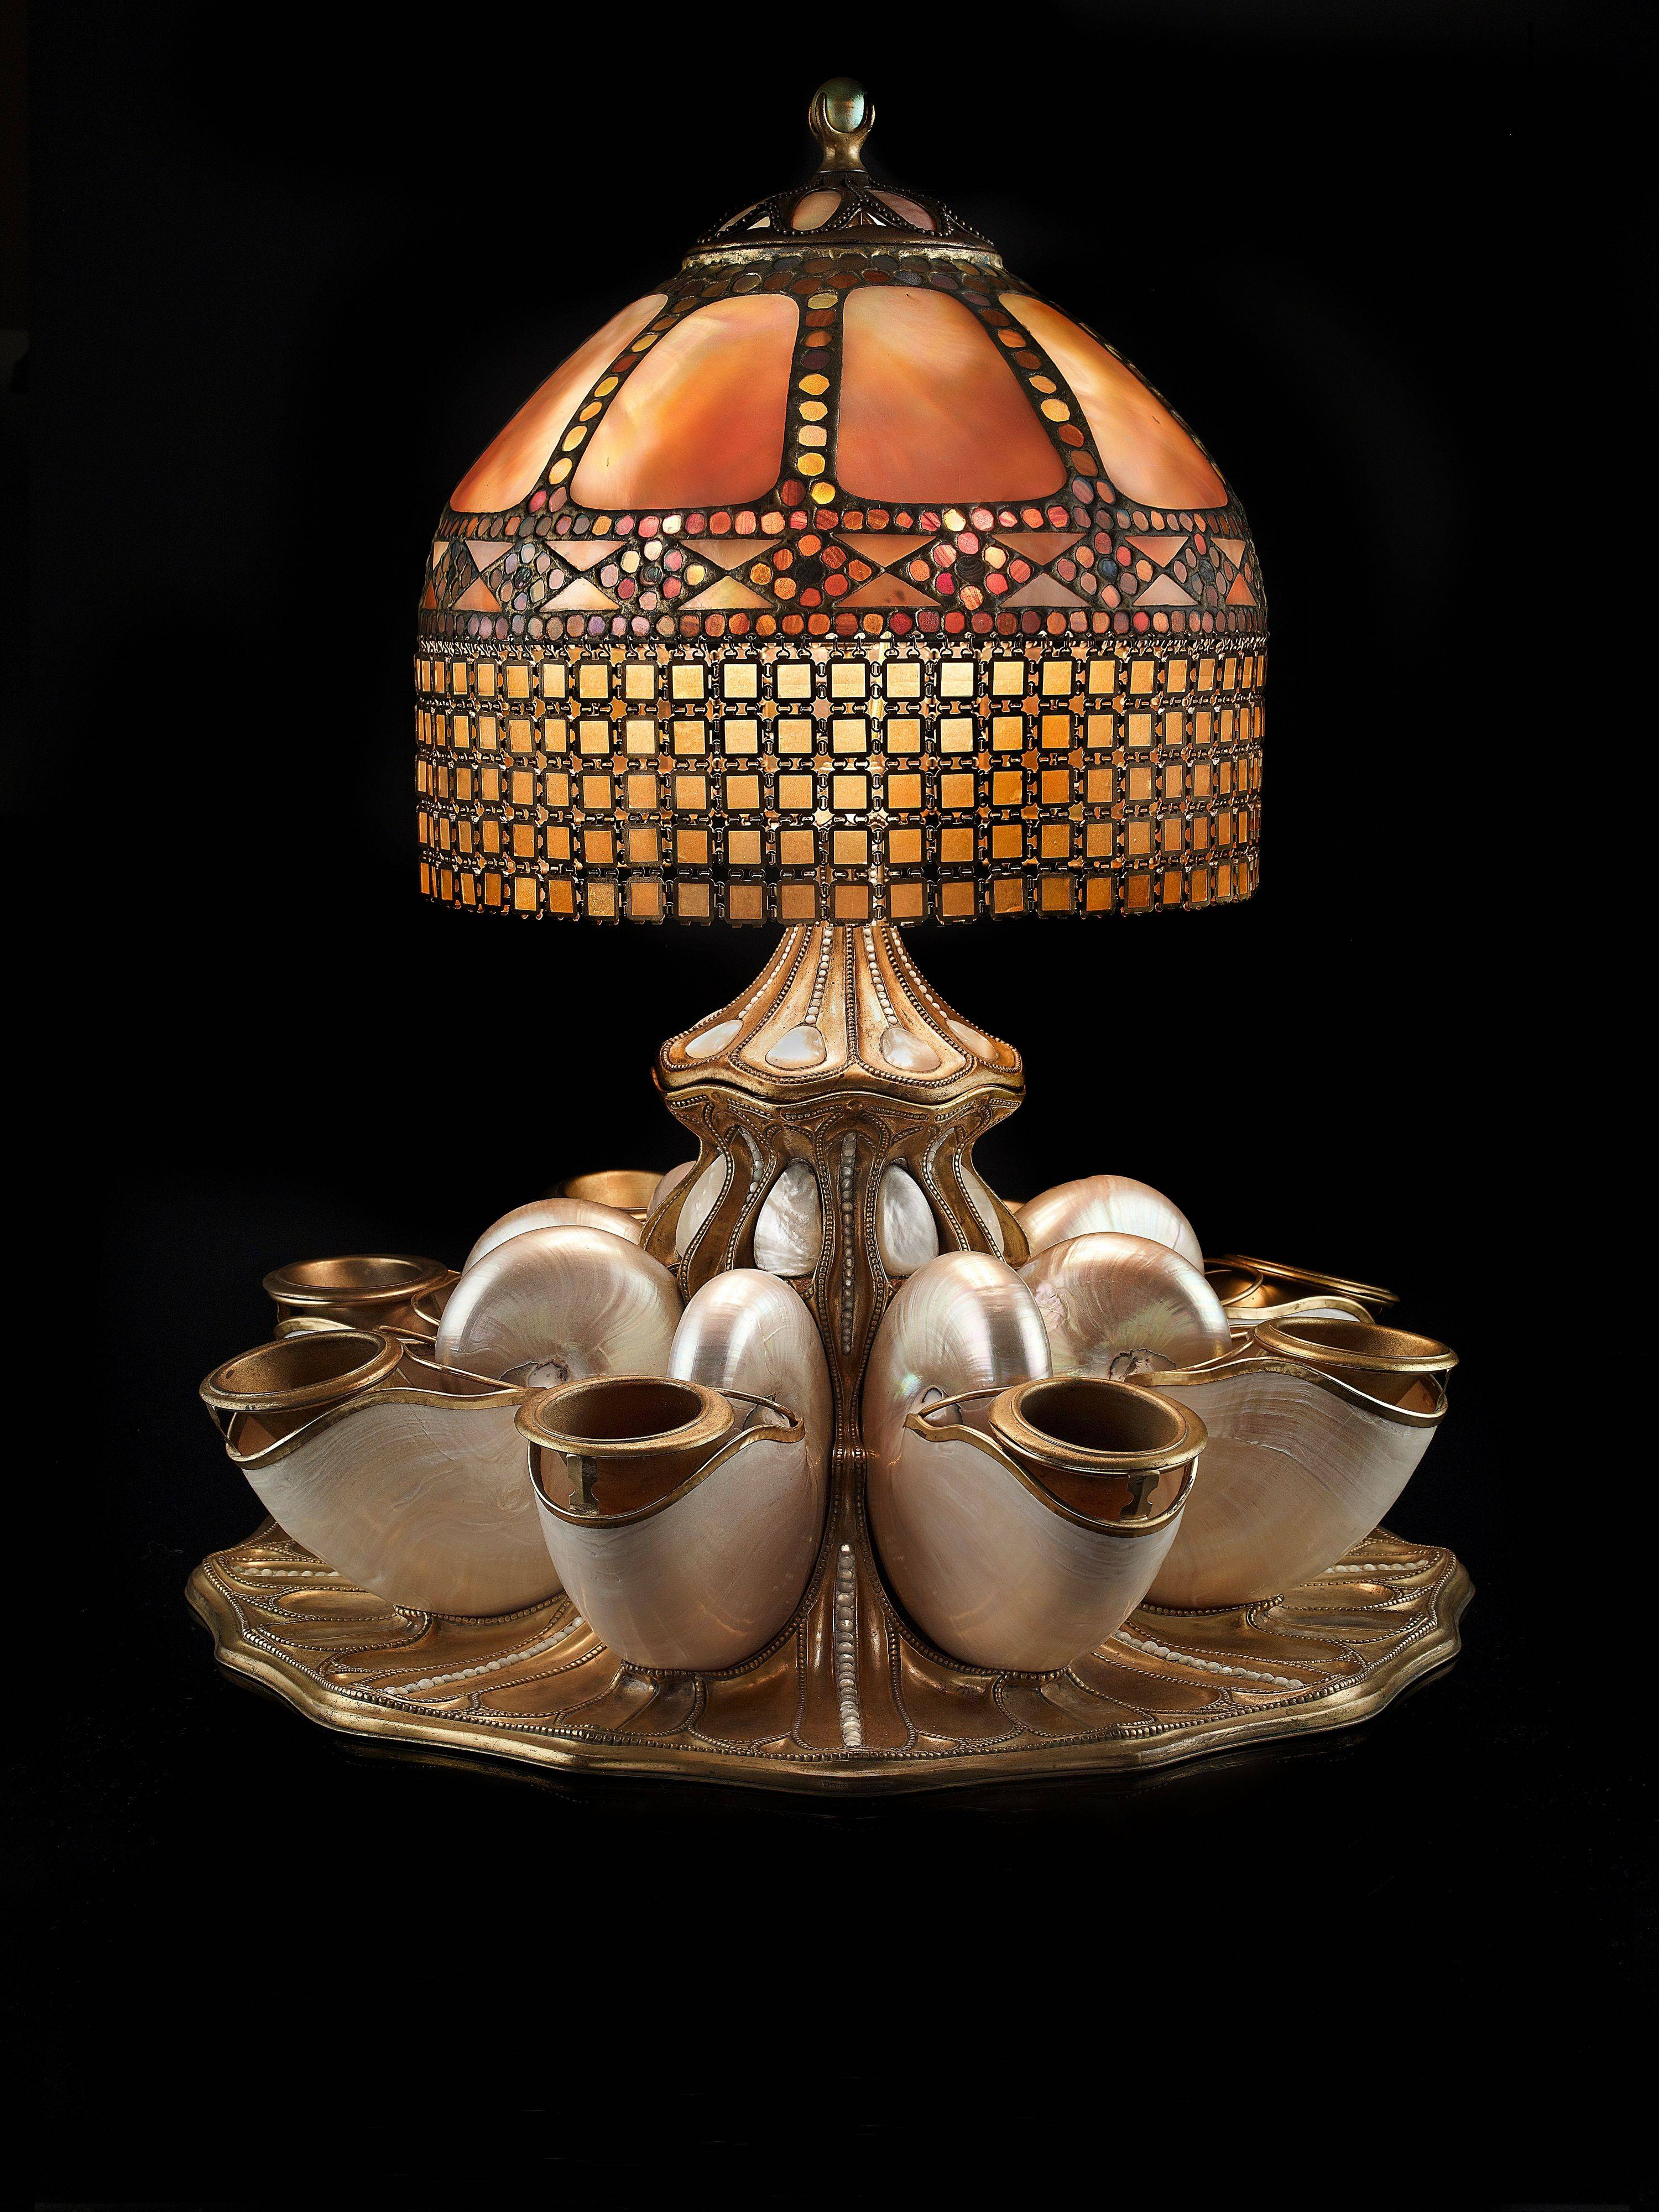 See this nautilus shell centerpiece lamp from 1910 at the new Tiffany exhibit at Chicago's Richard H. Driehaus Museum.